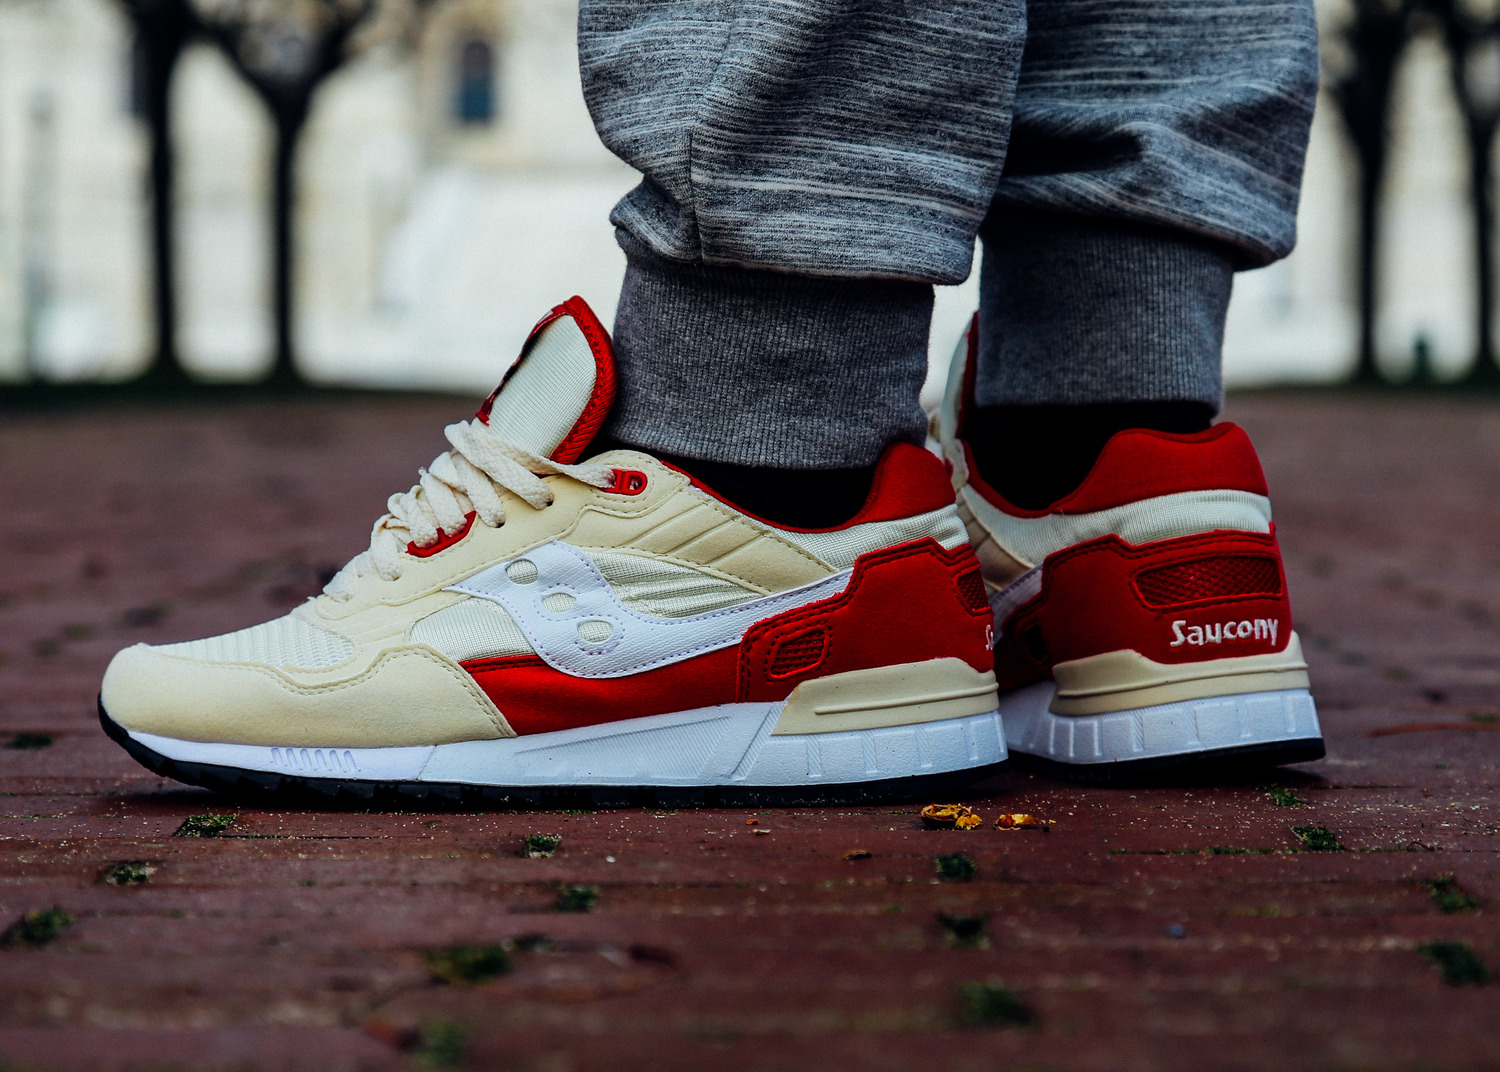 Saucony Red And Cream